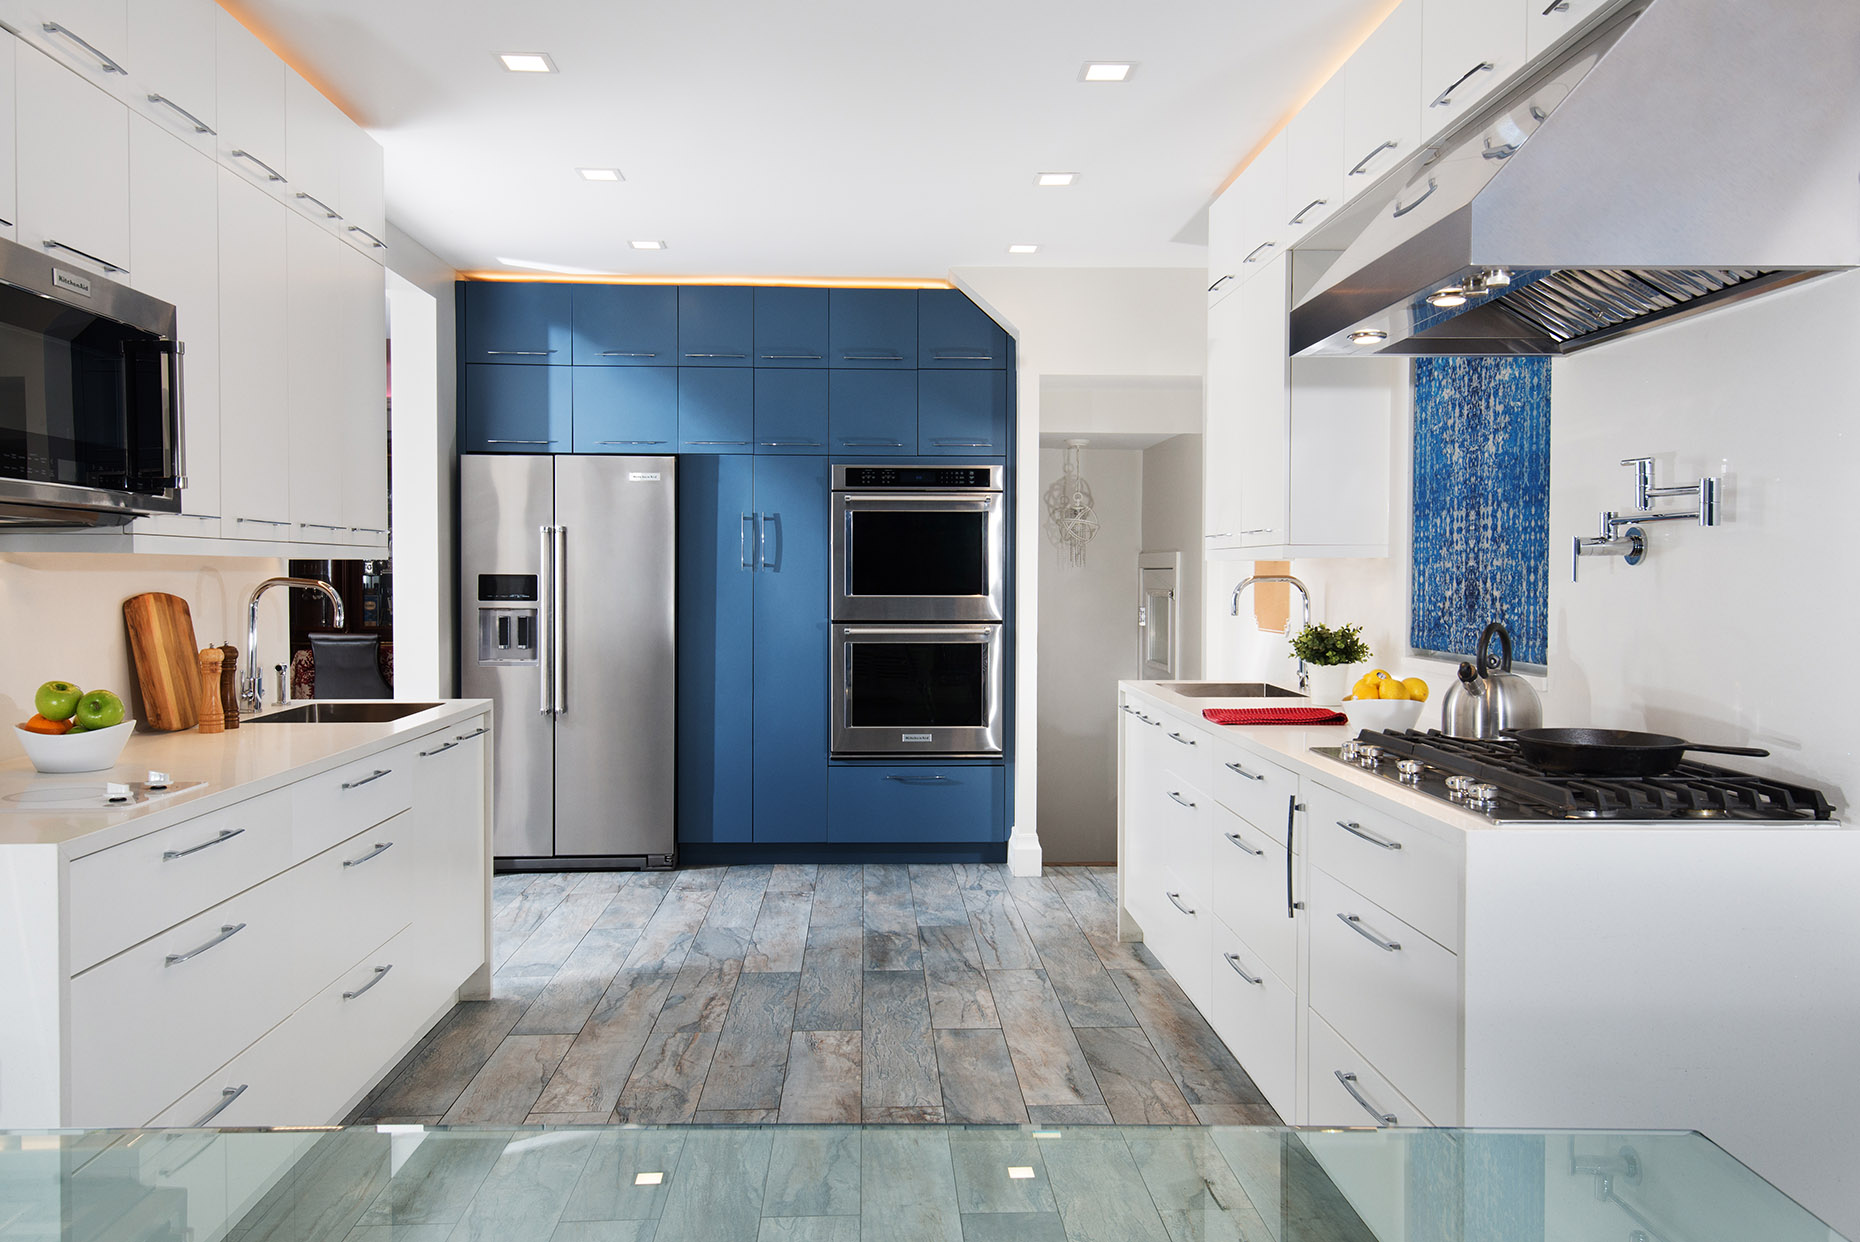 New-york-interior-design-kitchen-design-photographer